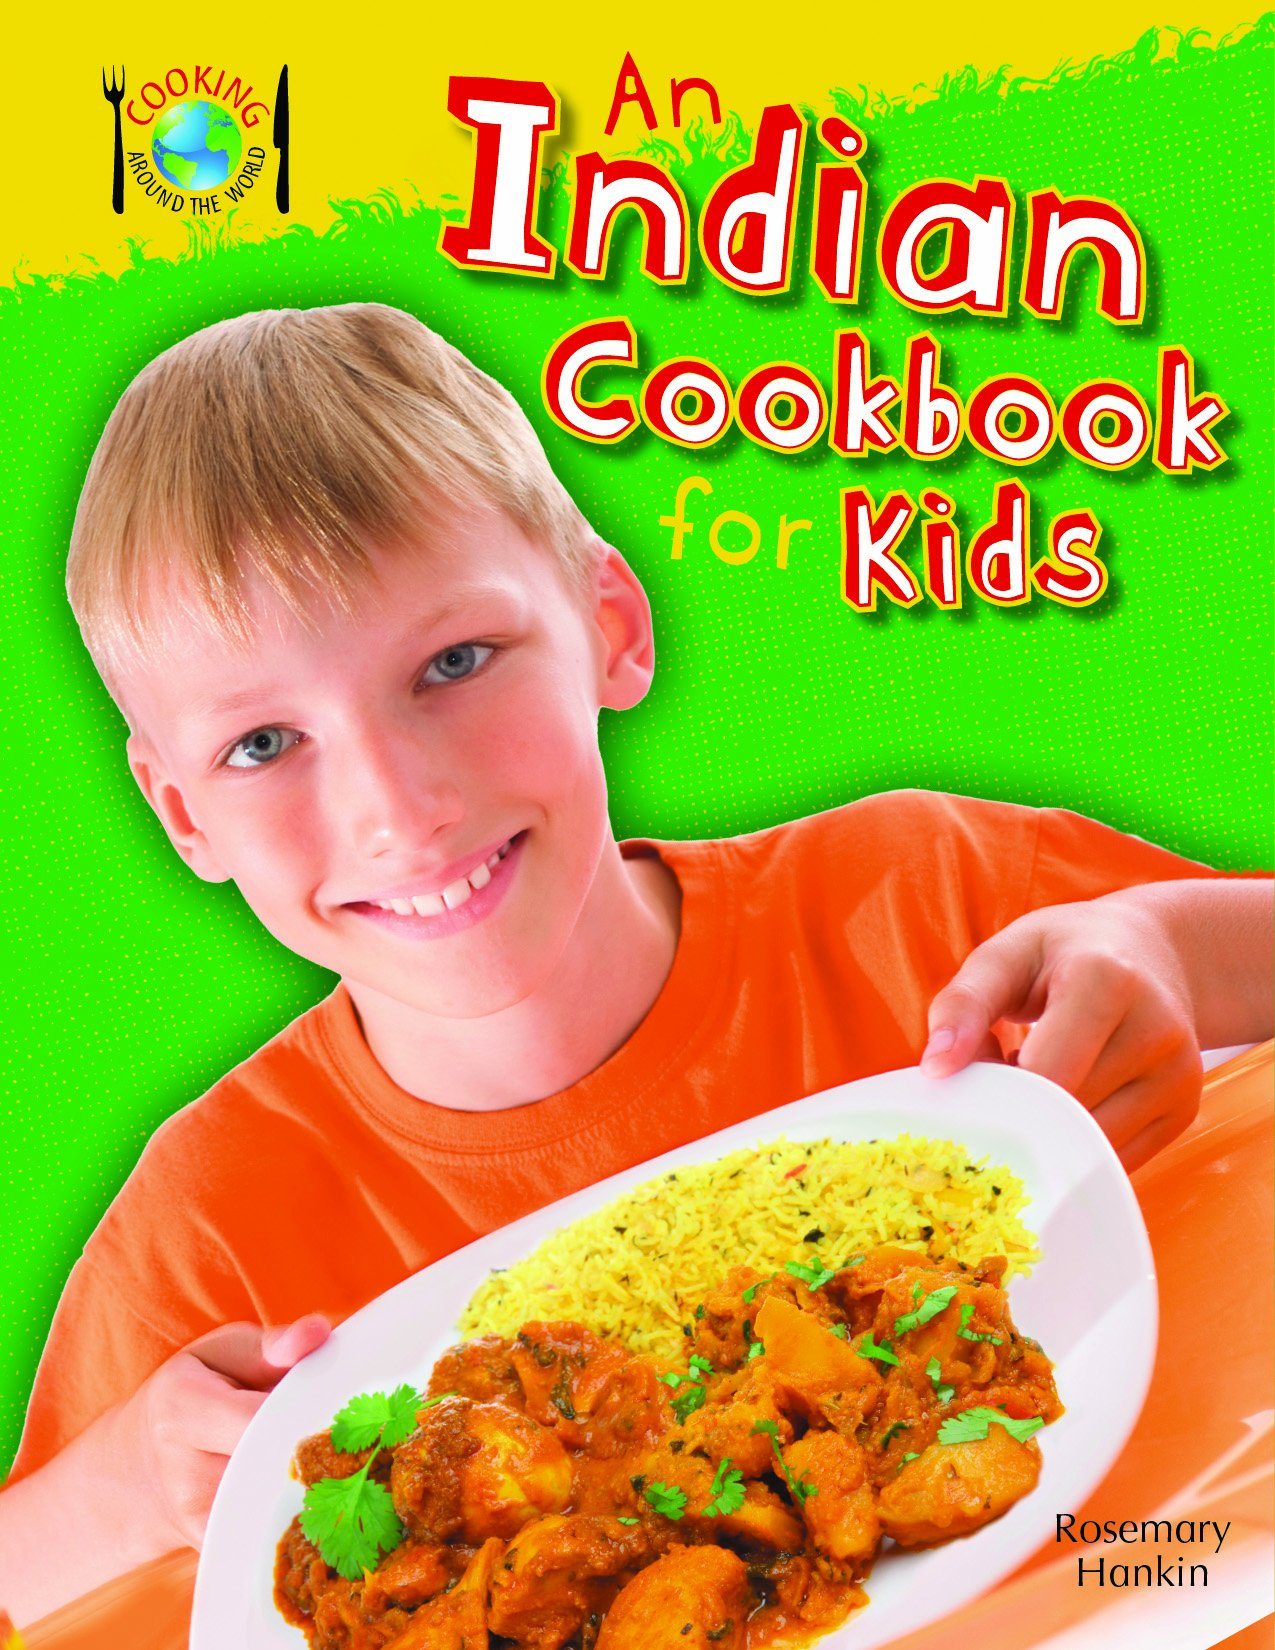 An Indian Cookbook for Kids (Cooking Around the World)